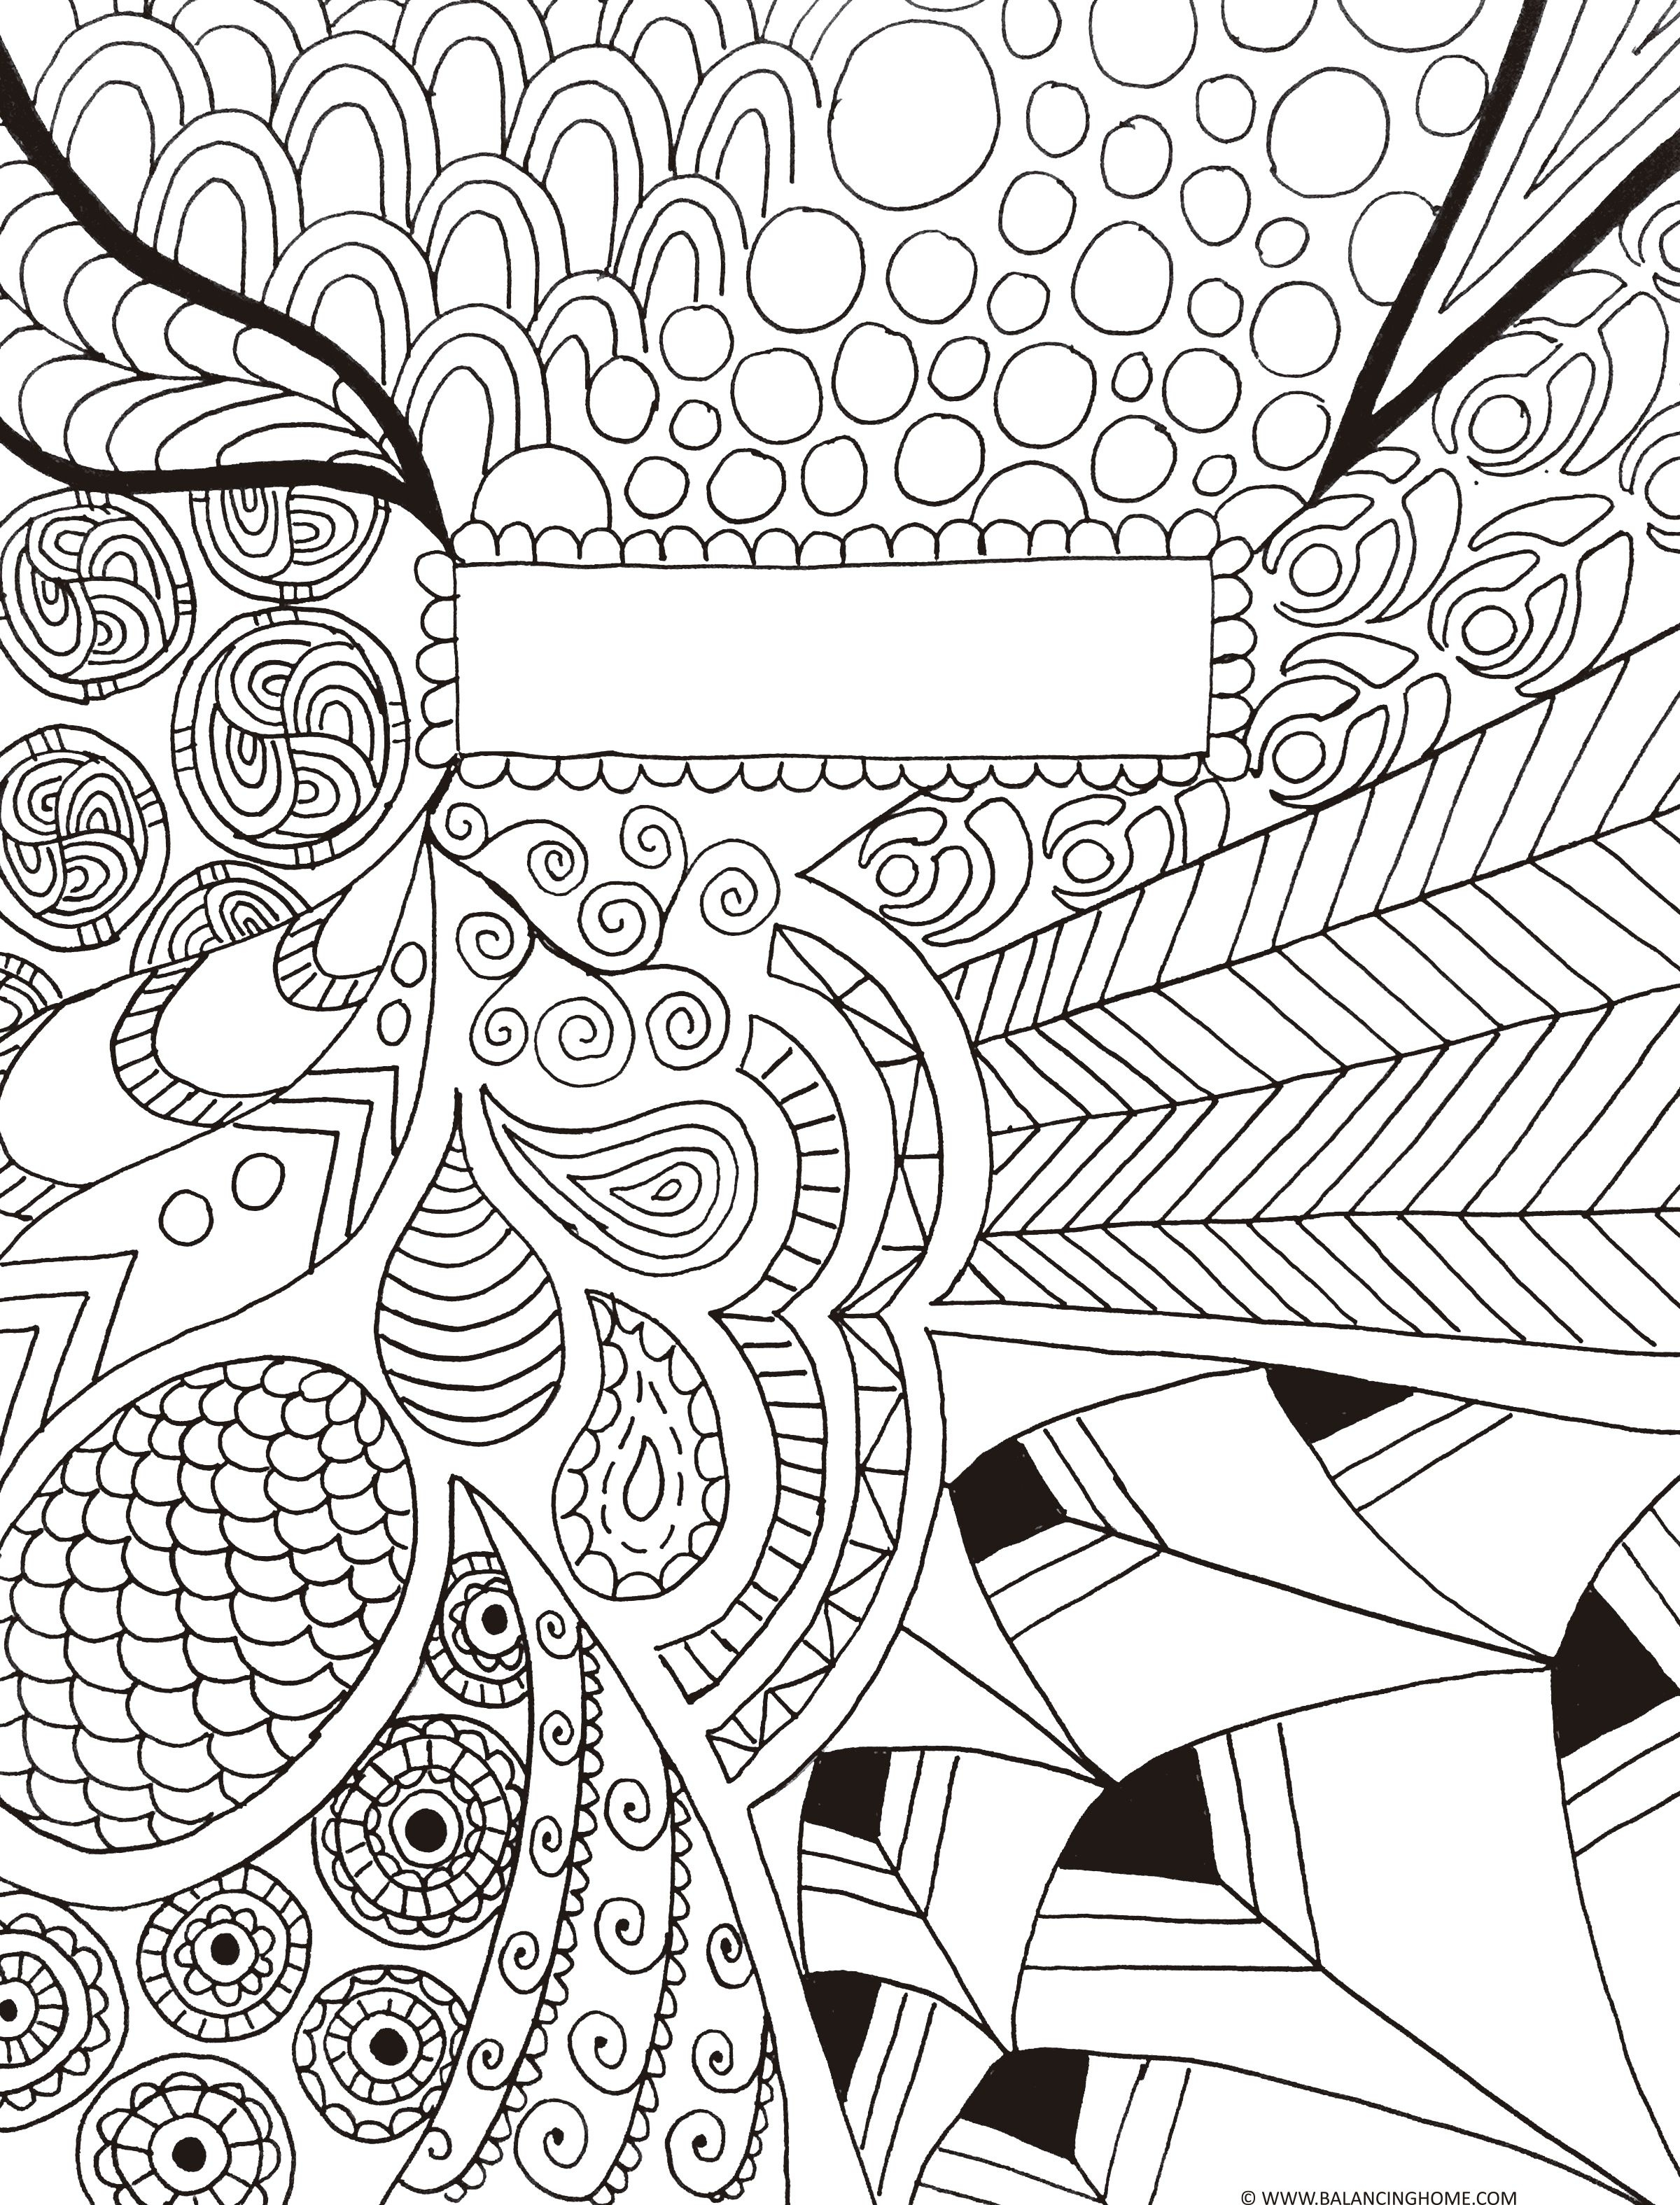 Pindanielle Tansy On Printables | Binder Covers, Coloring Pages - Free Printable Binder Covers To Color